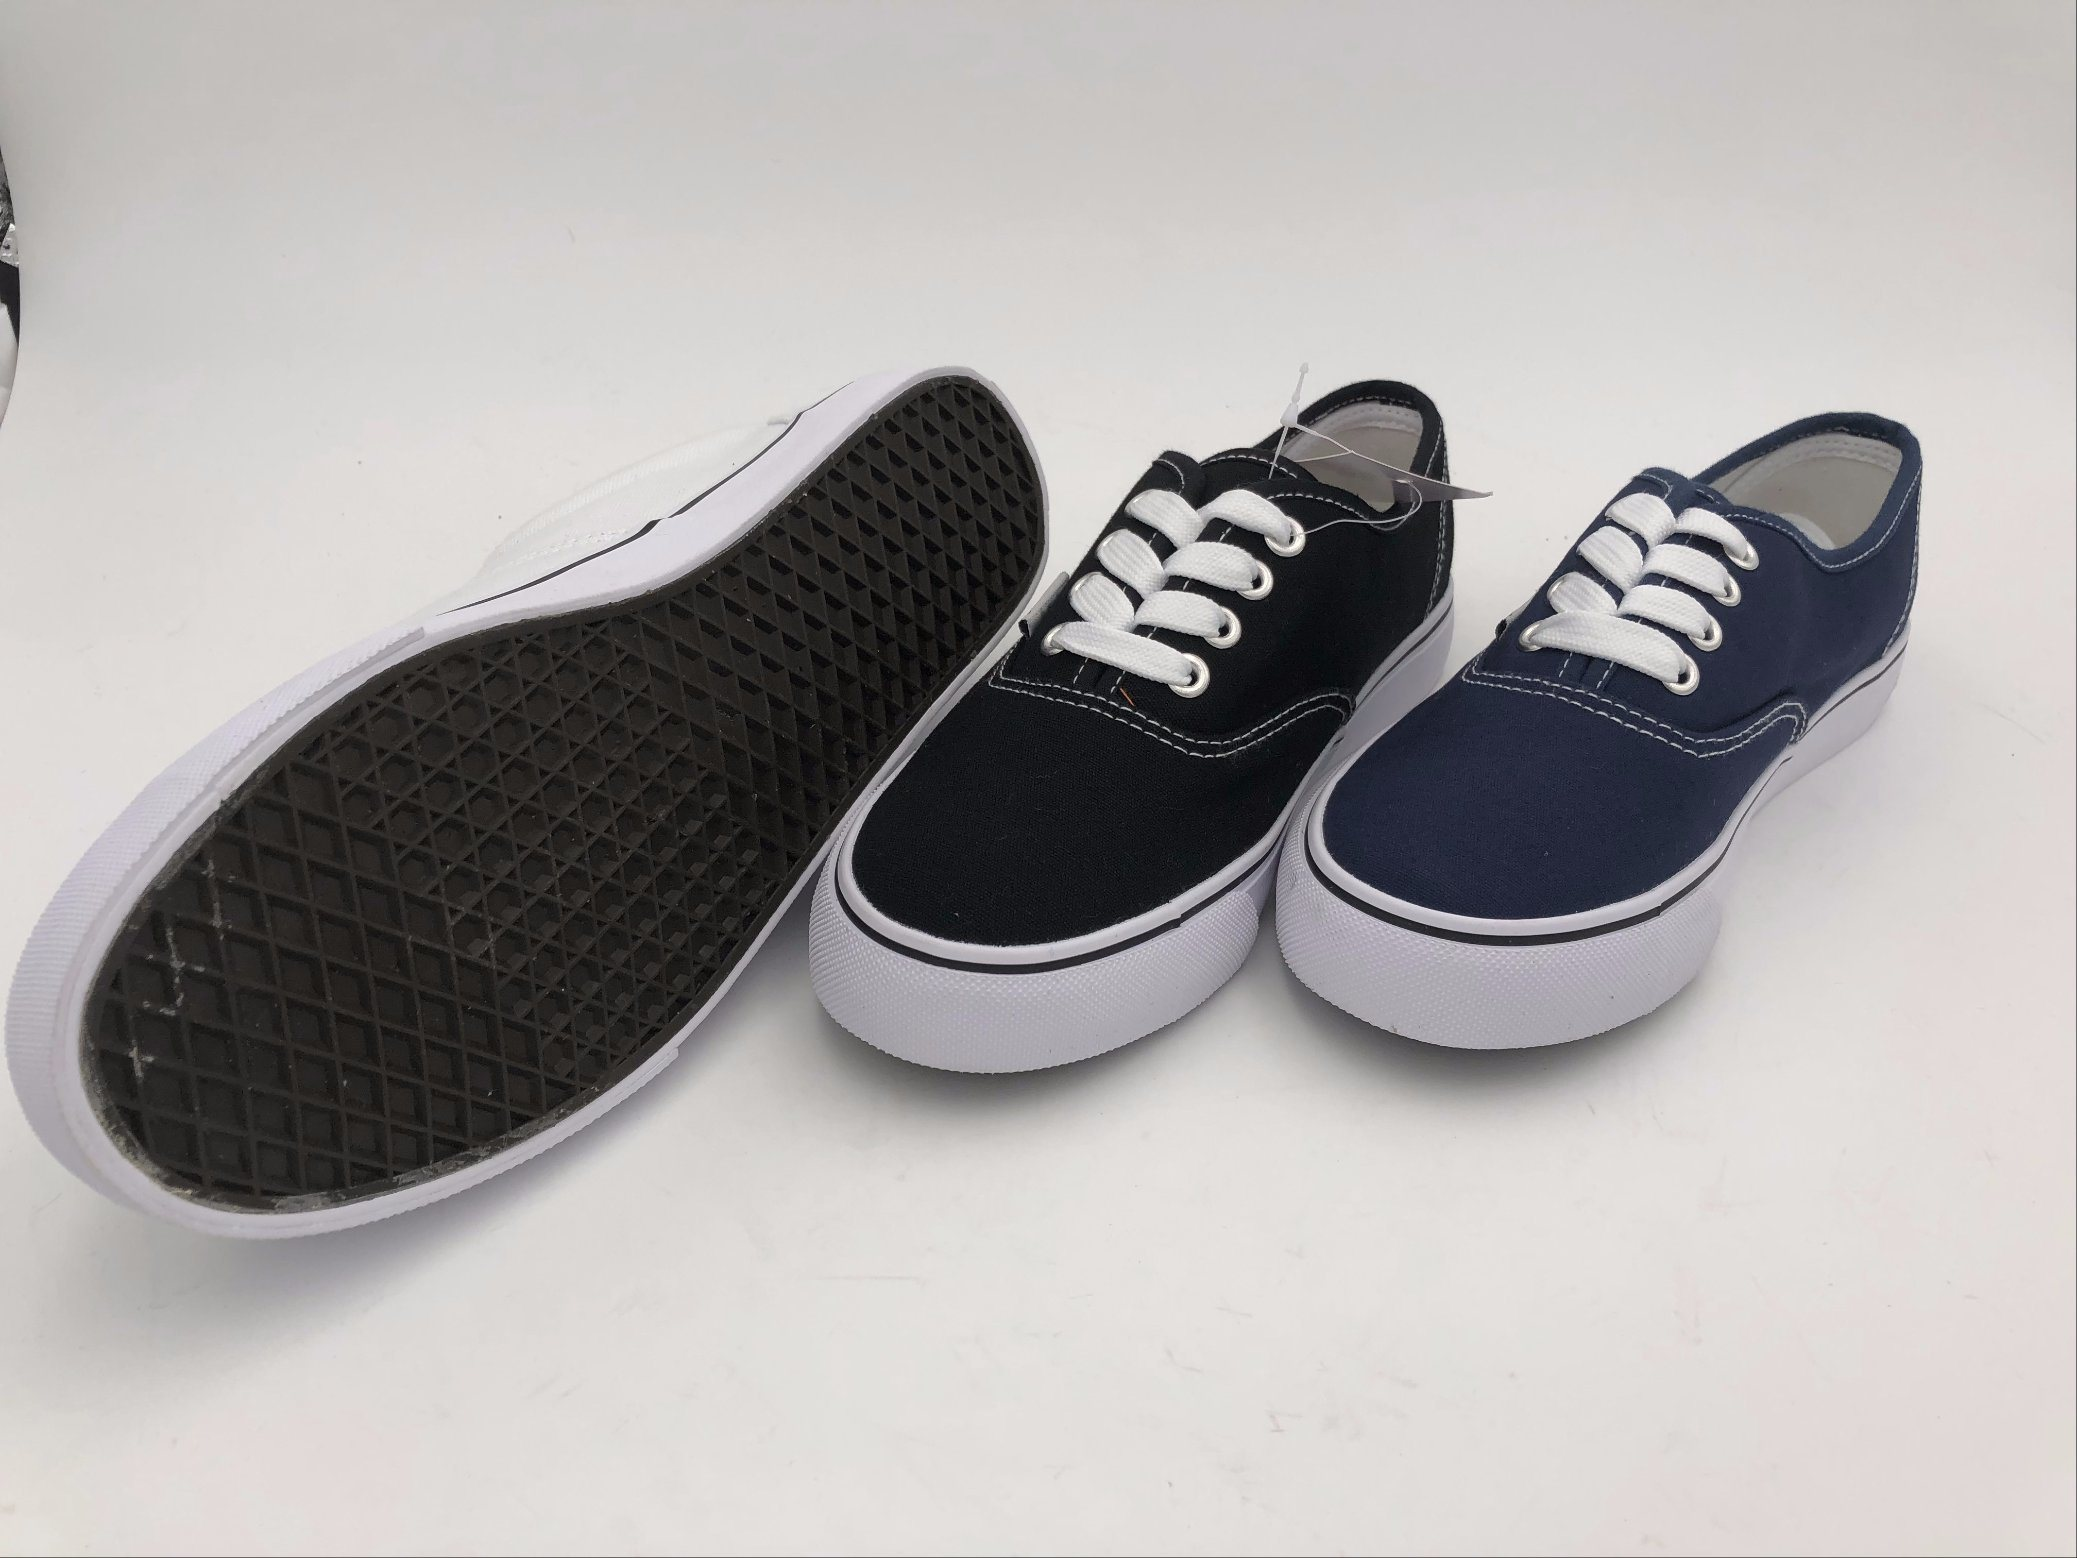 Adult Cloth Material Casual Shoes